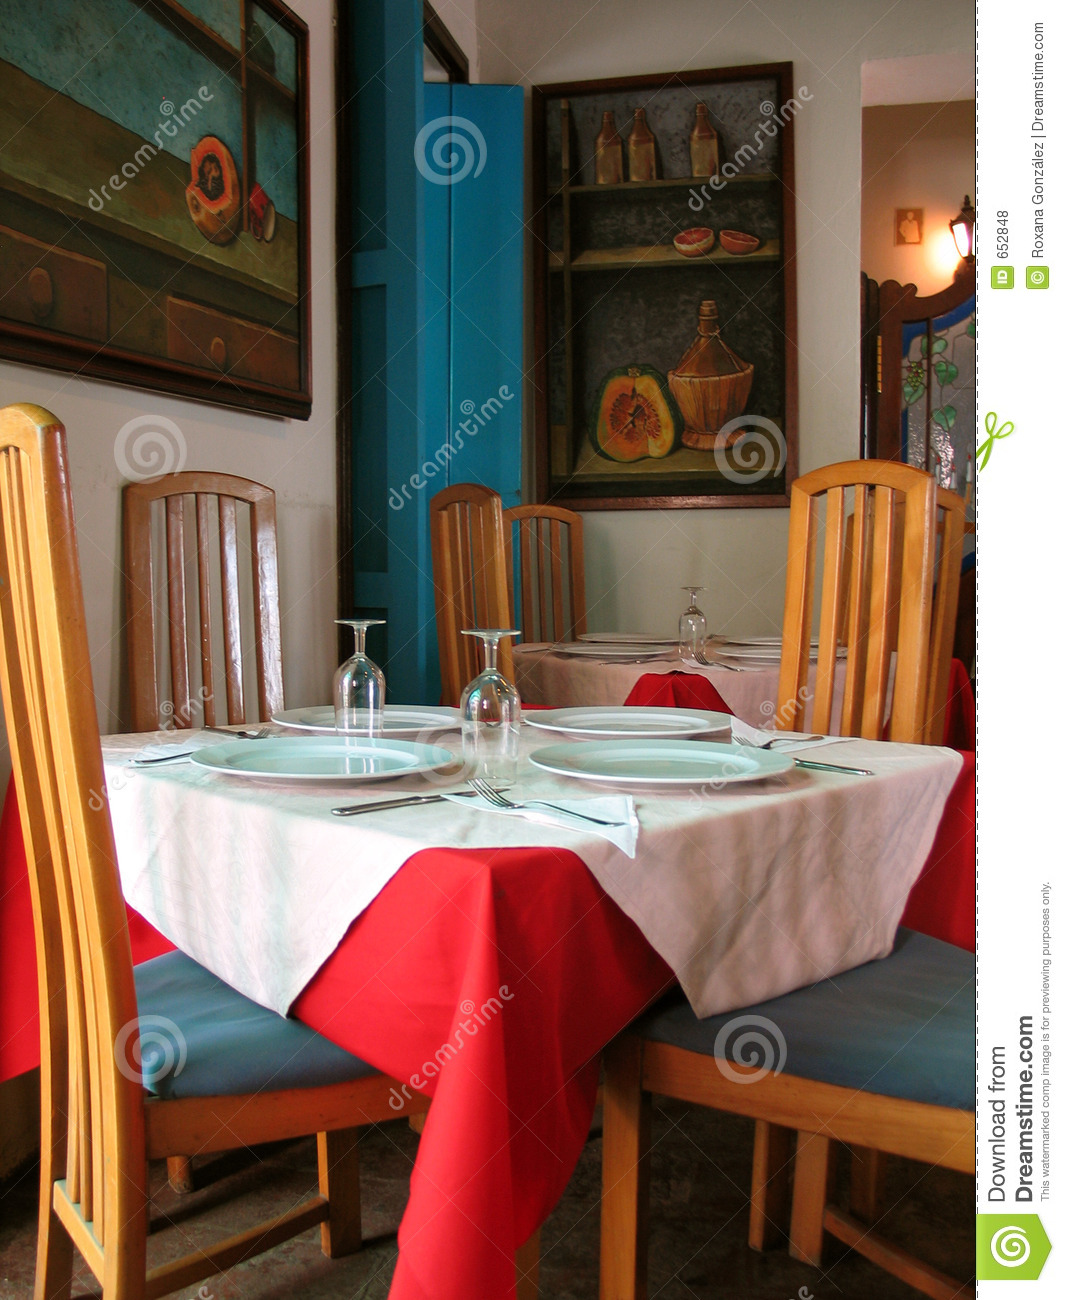 tropical restaurant interior royalty free stock photos - image: 652848